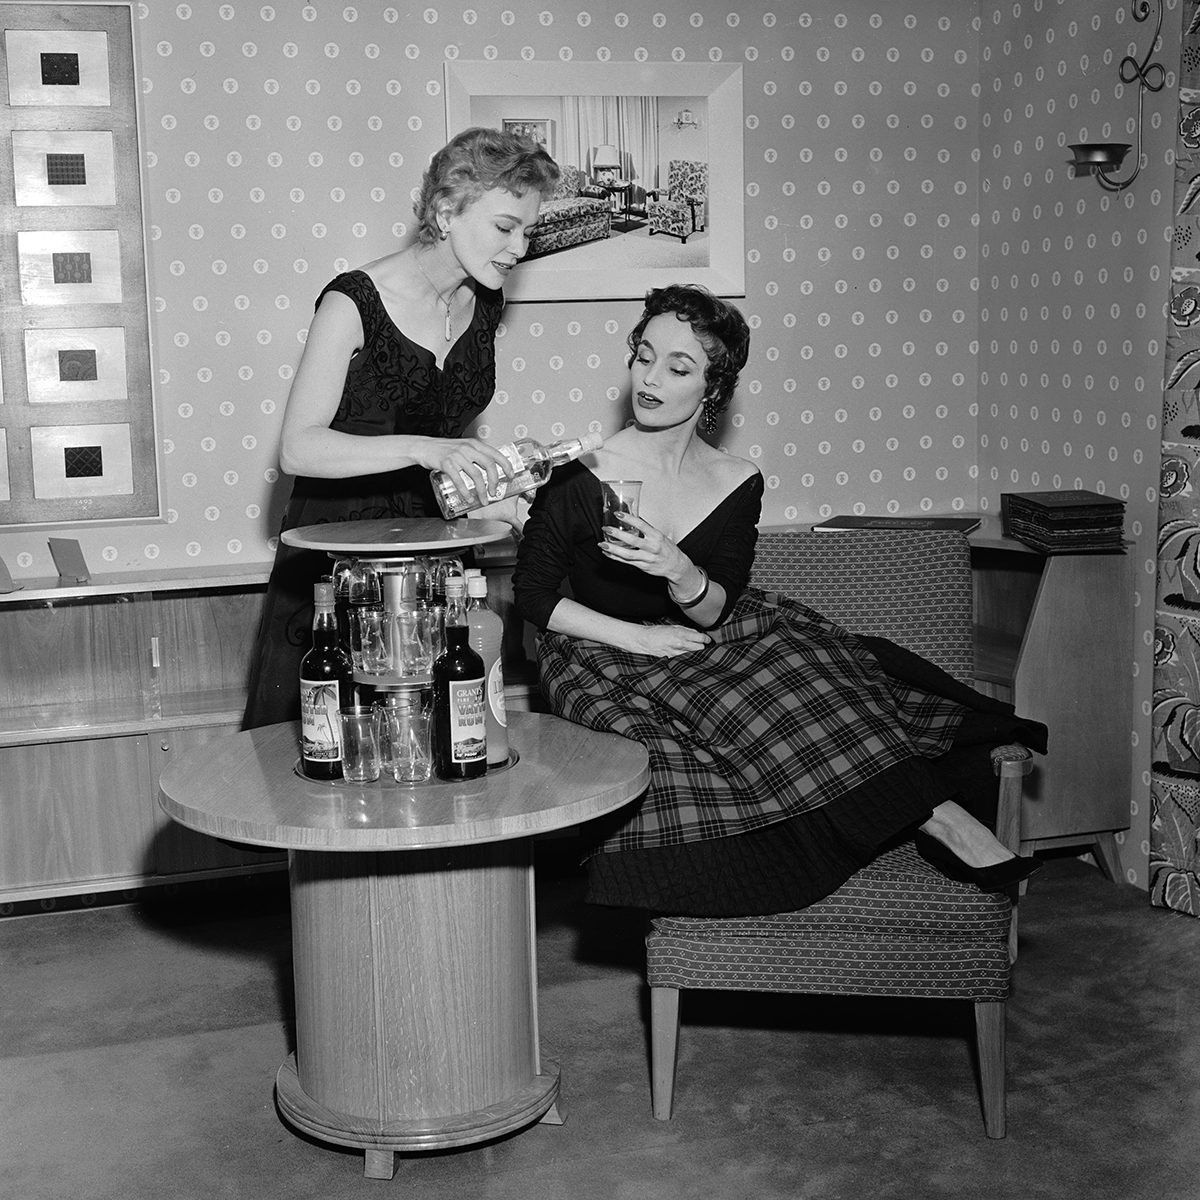 Models Jean Evans and Lynne Kennedy demostrating the push button cocktail cabinet at the British Furniture Exhibition at Earl's Court, London, 15th February 1954. The table has a concealed central section to store bottles and glasses which are revealed at the touch of a button. (Photo by Monty Fresco/Topical Press Agency/Getty Images)